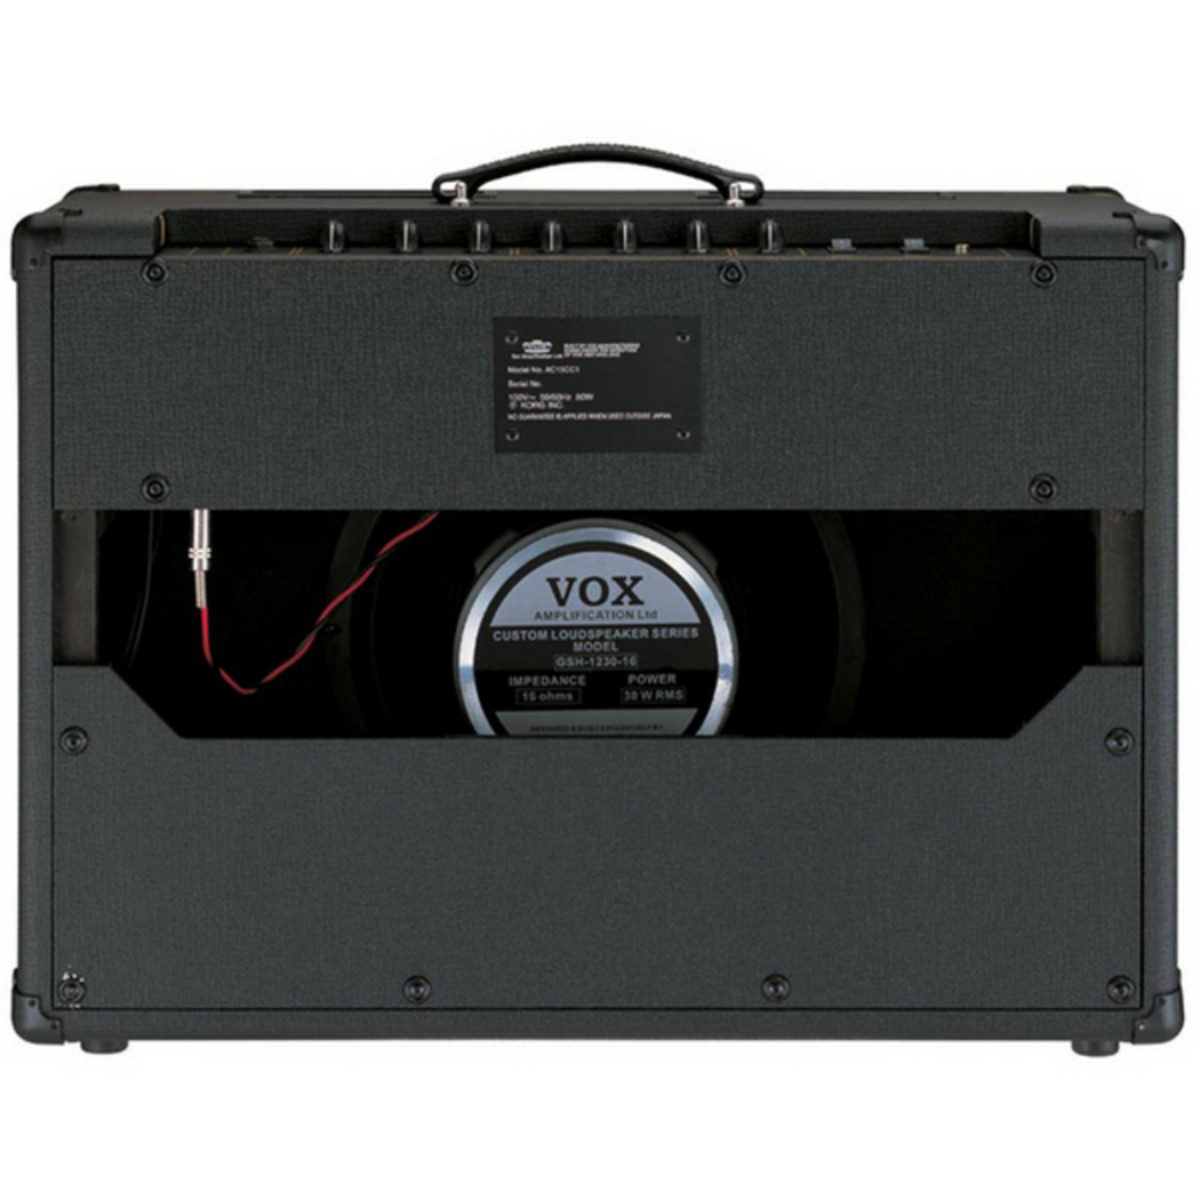 vox ac15 cc1 1x12 custom classic amp pedal at. Black Bedroom Furniture Sets. Home Design Ideas